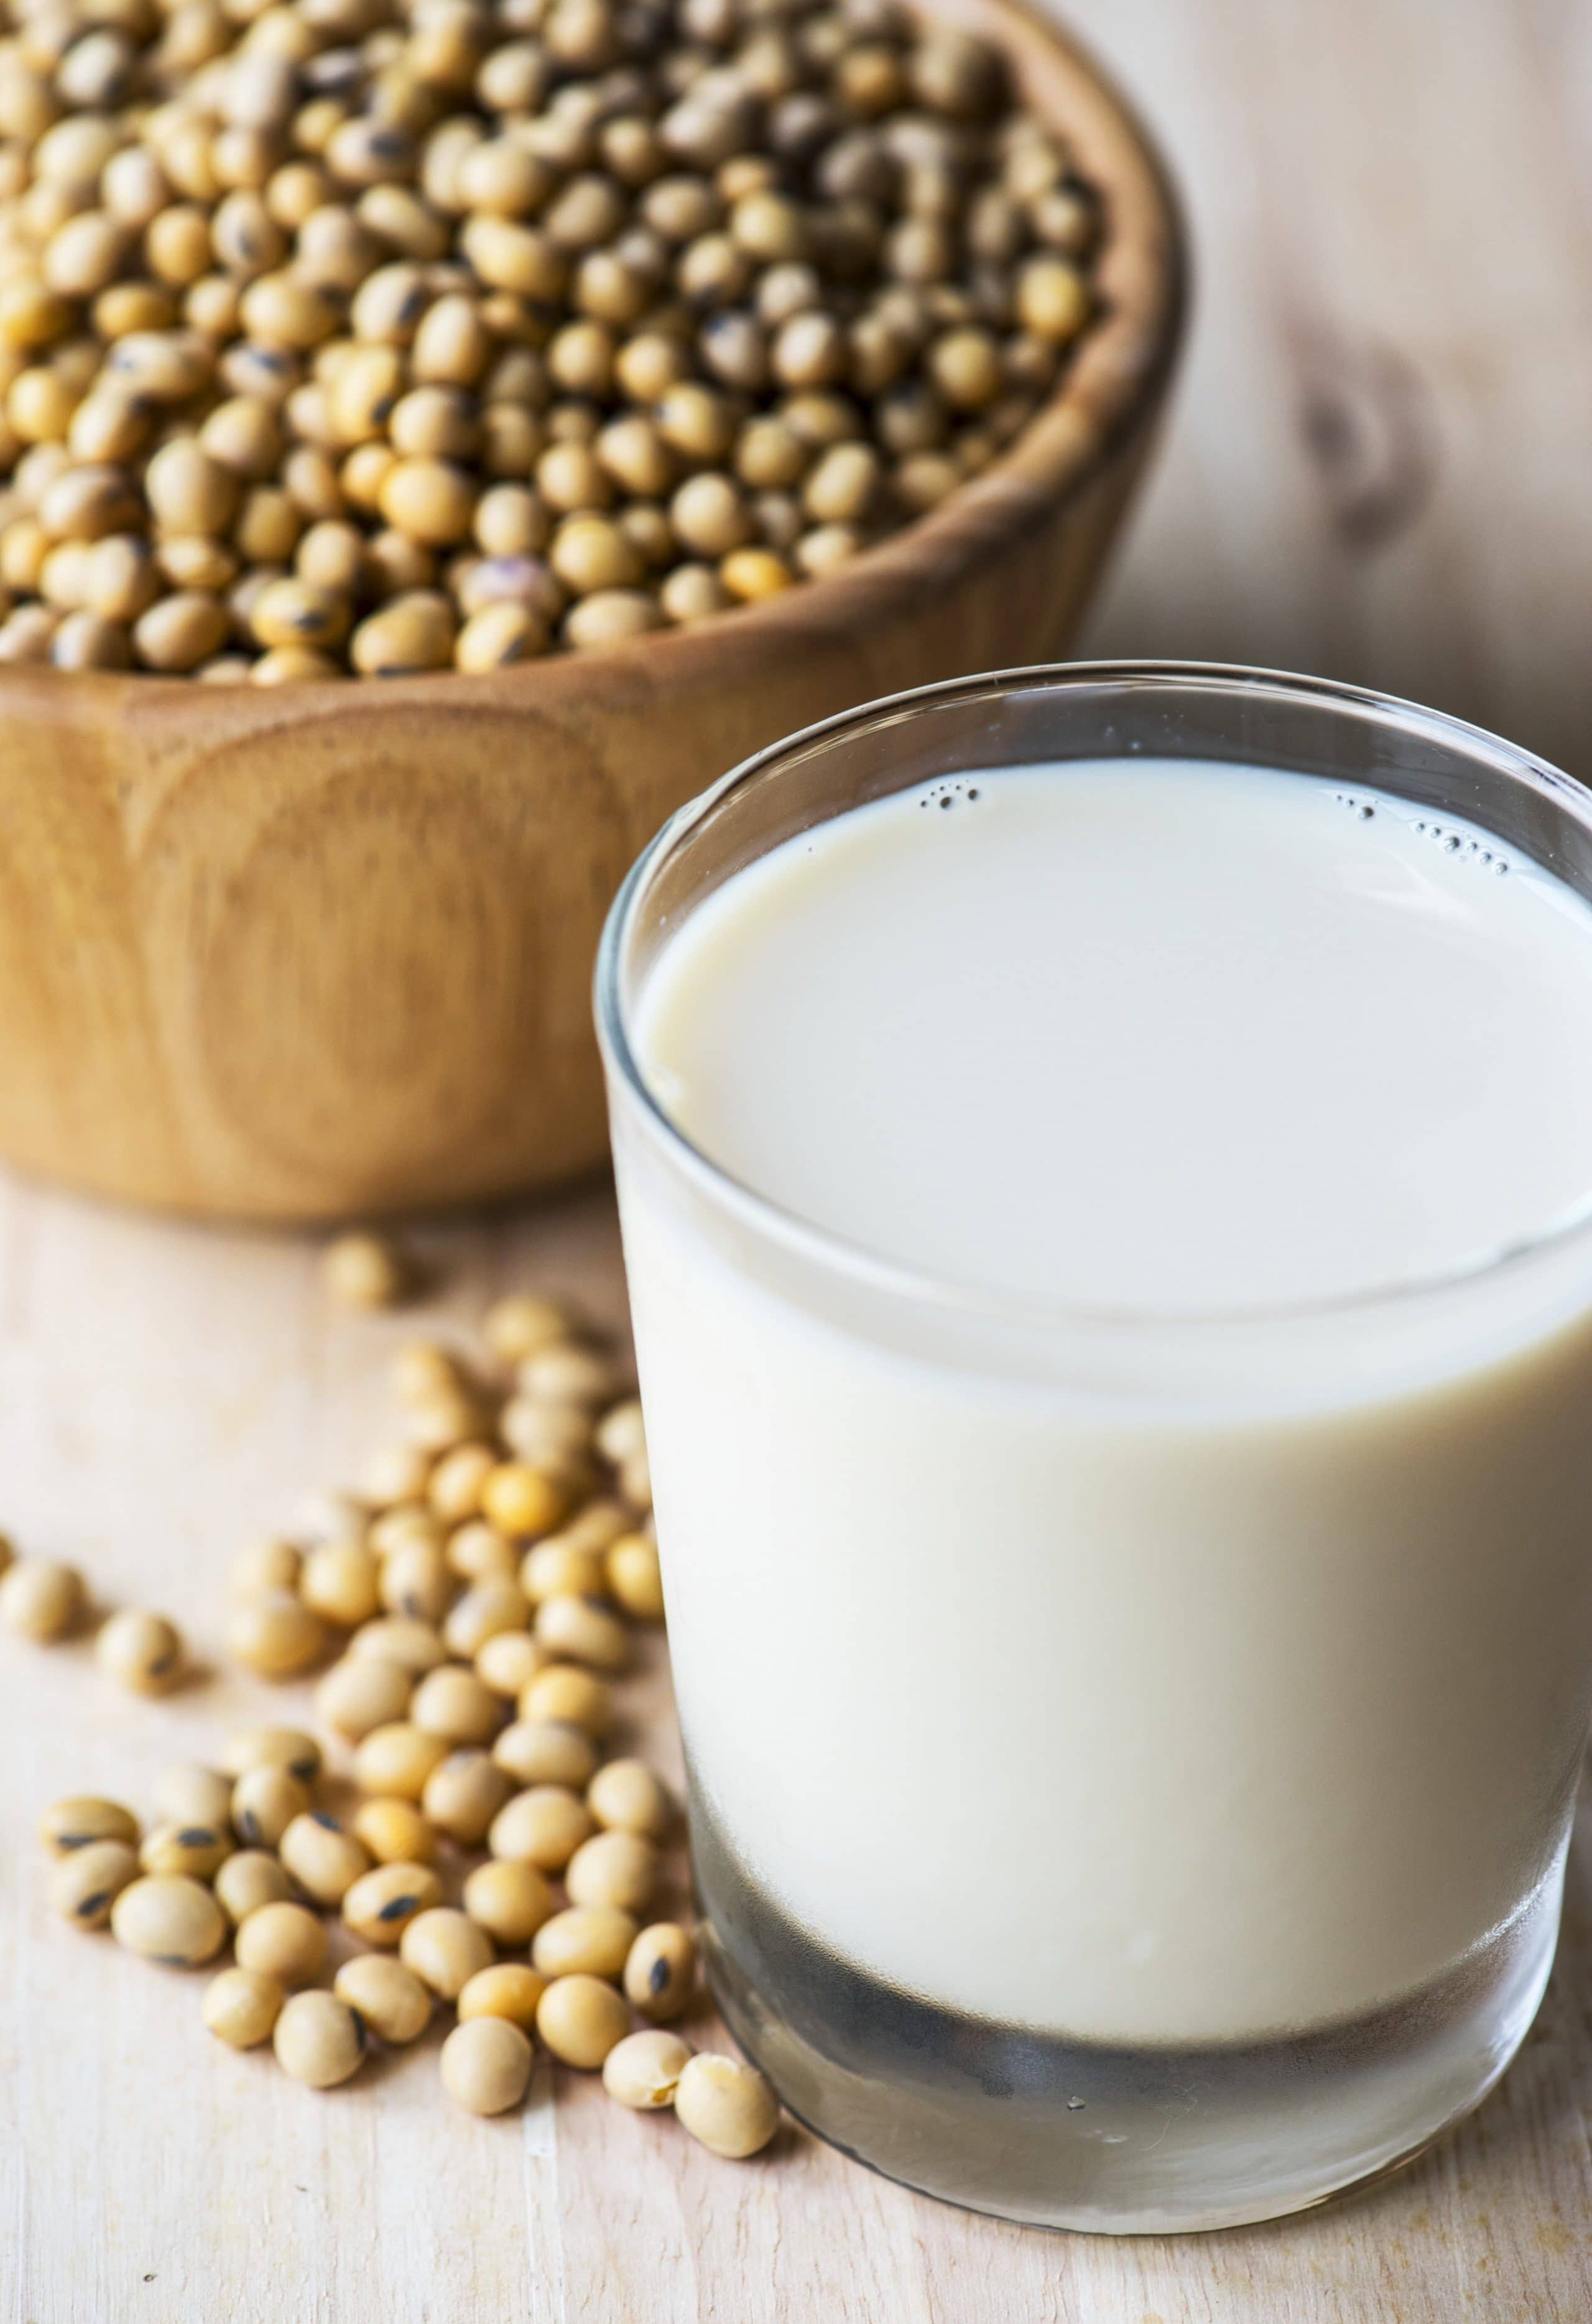 Is Soy Safe For Women With PCOS? | Dietitian Advice In